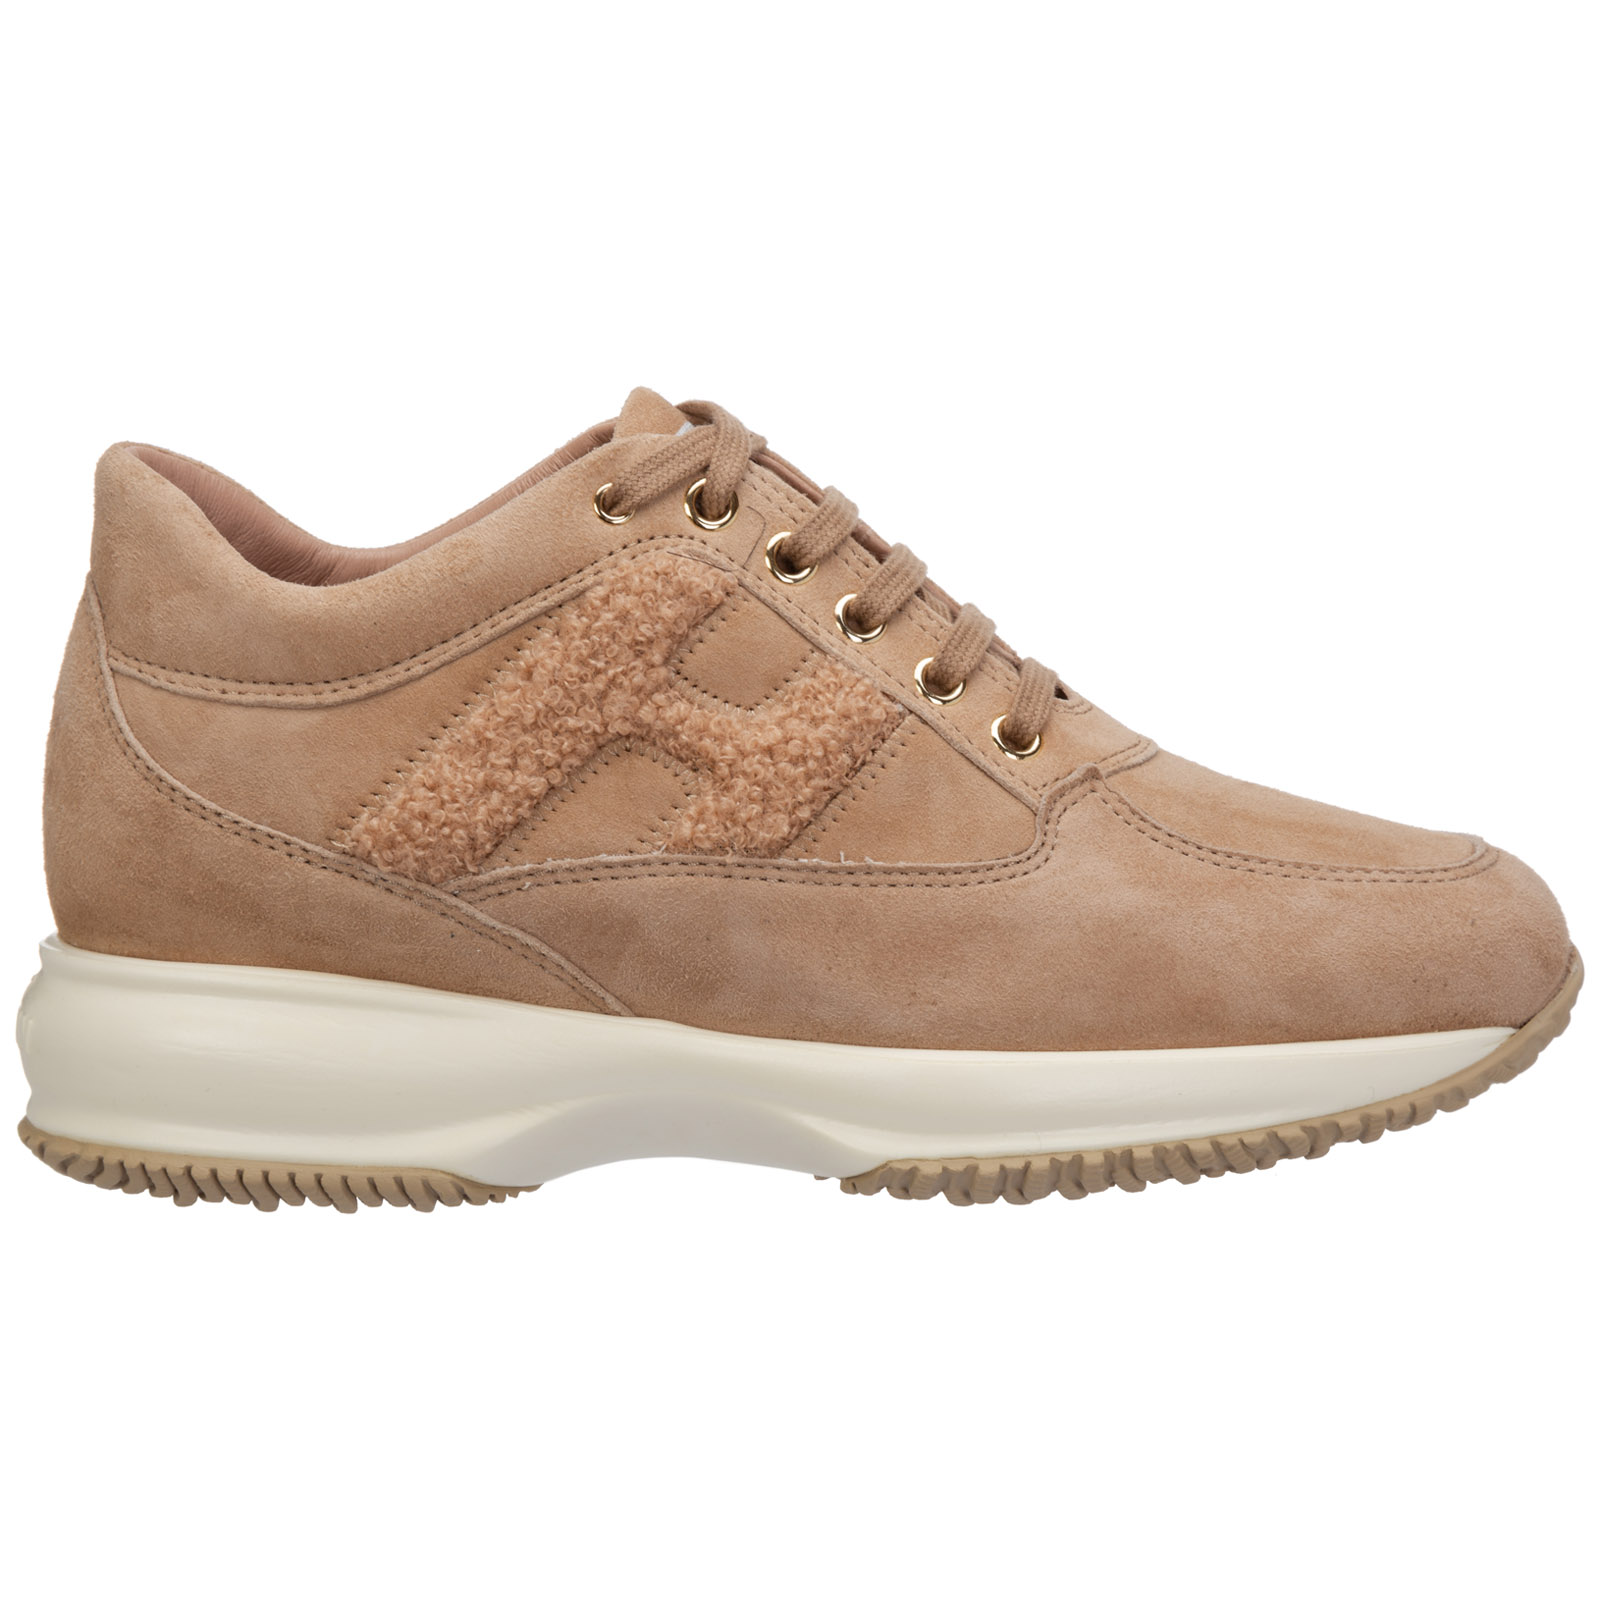 Women's shoes suede trainers sneakers interactive